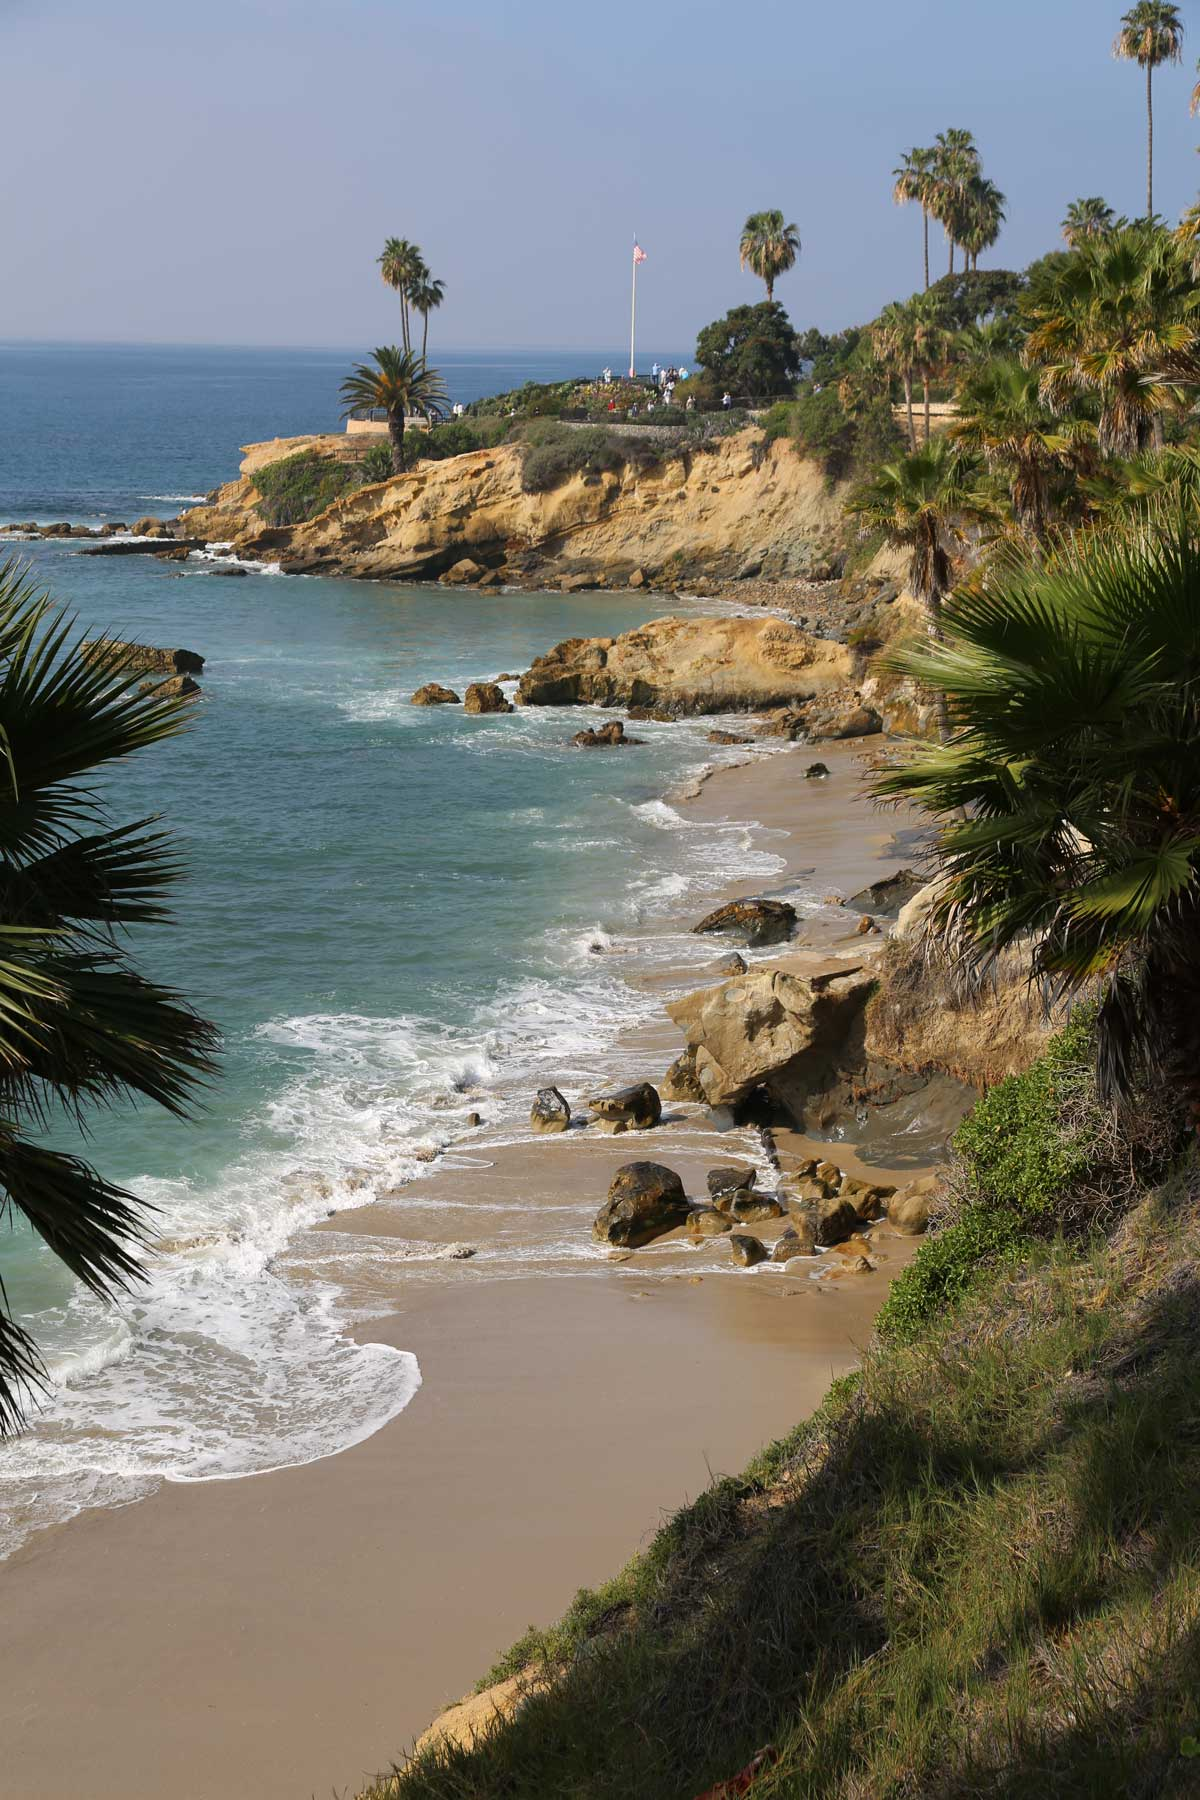 Los Angeles is an amazing city and is located in a state full of great vacation destinations.Taking a weekend trip out of the city to clear your mind and relax is a must do at any time of year.